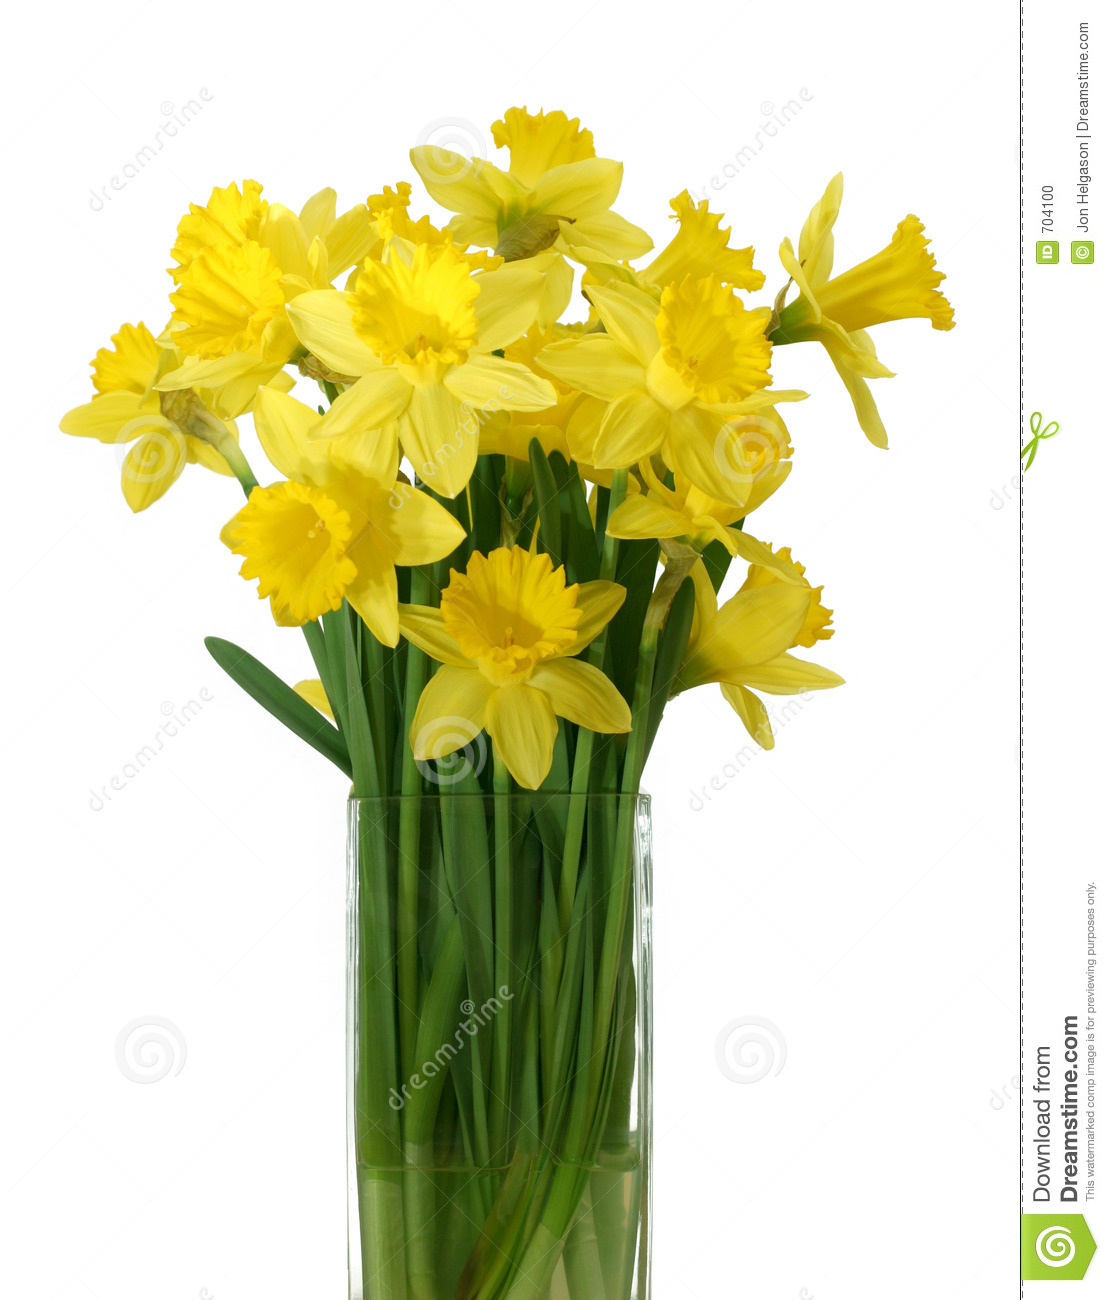 Daffodils In A Vase - Isolated Stock Photo - Image: 704100 White Daisy Flowers Clipart